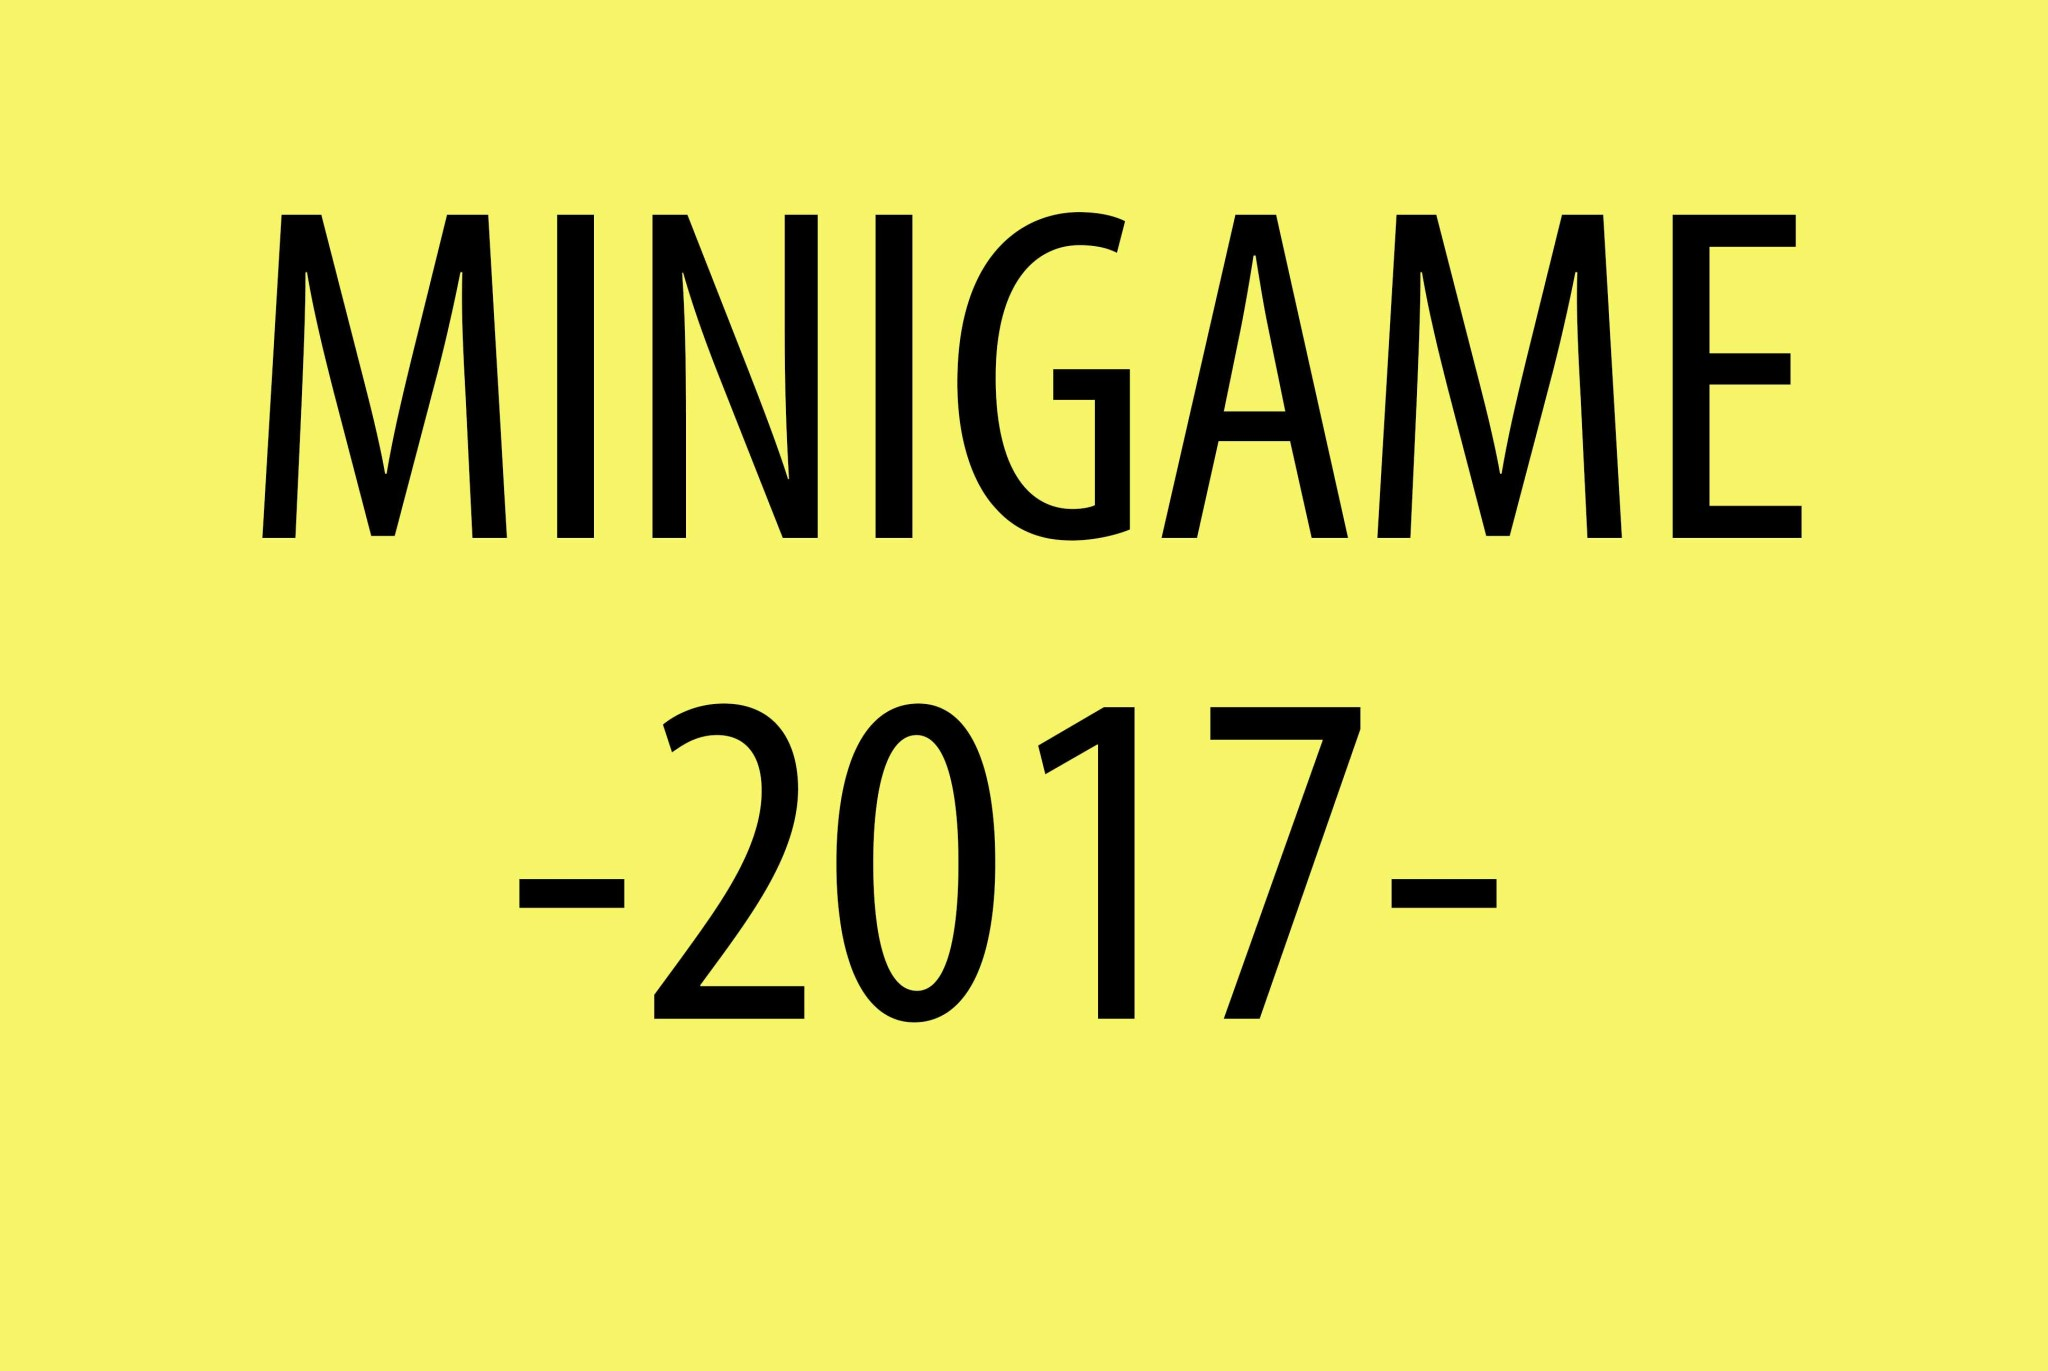 MIMIGAME